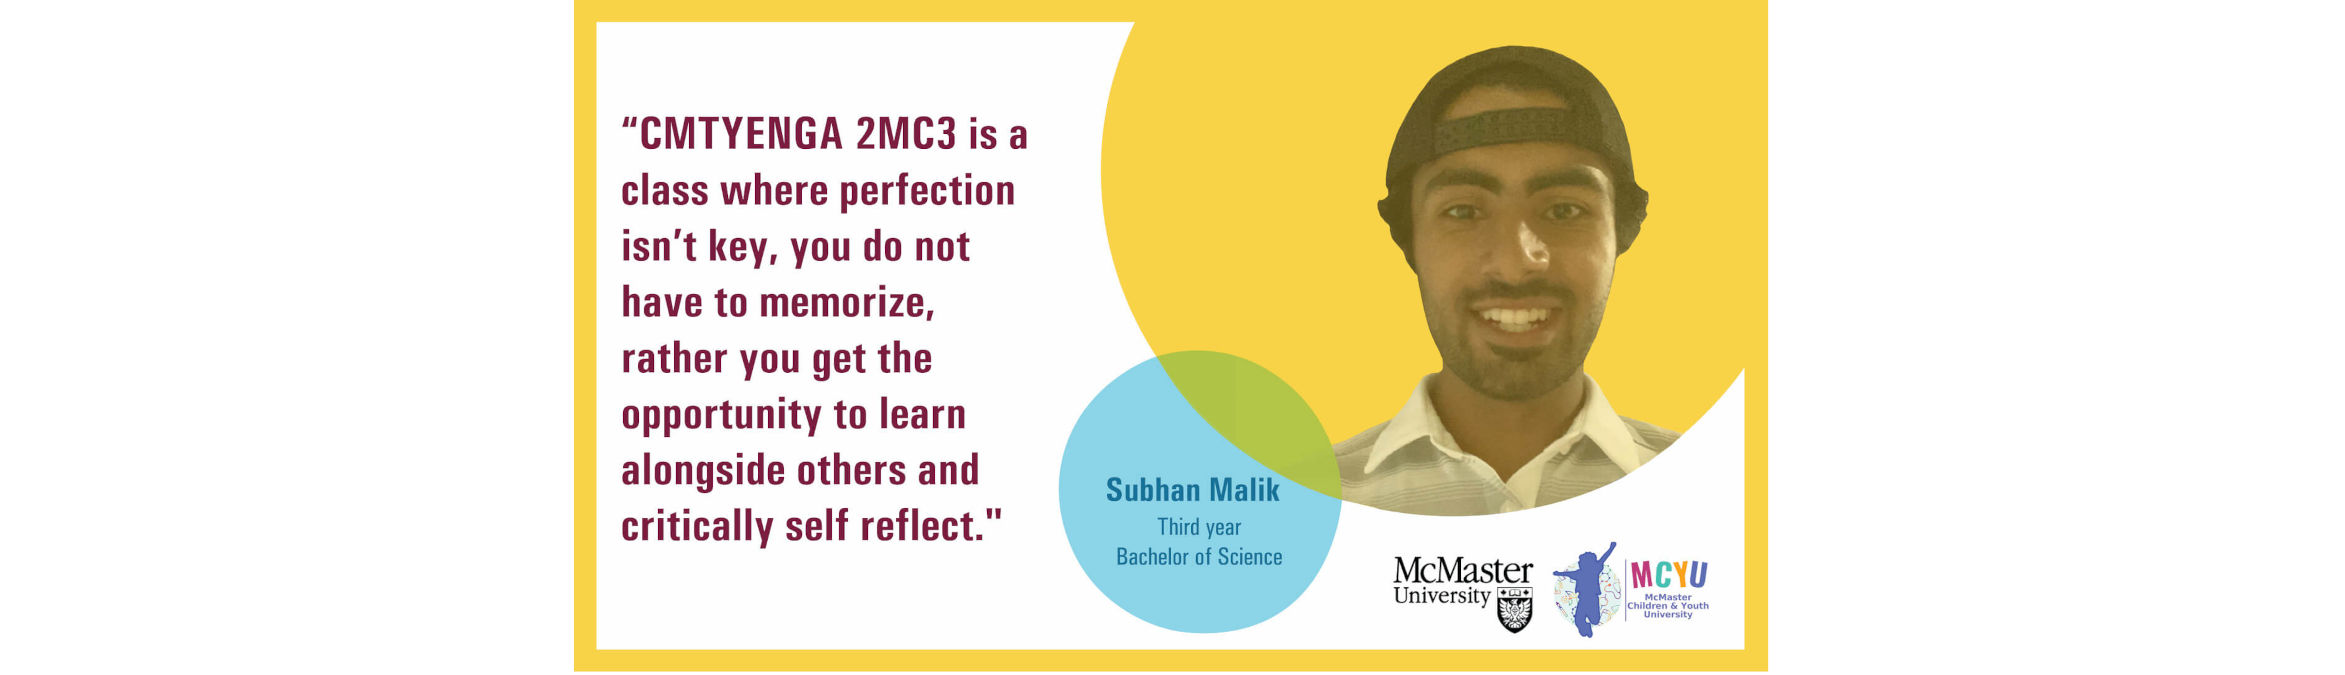 Testimonial by Subhan Malik (Third year, Bachelor of Science): CMTYENGA 2MC3 is a class where perfection isn't key, you do not have to memorize, rather you get the opportunity to learn alongside others and critically self reflect.